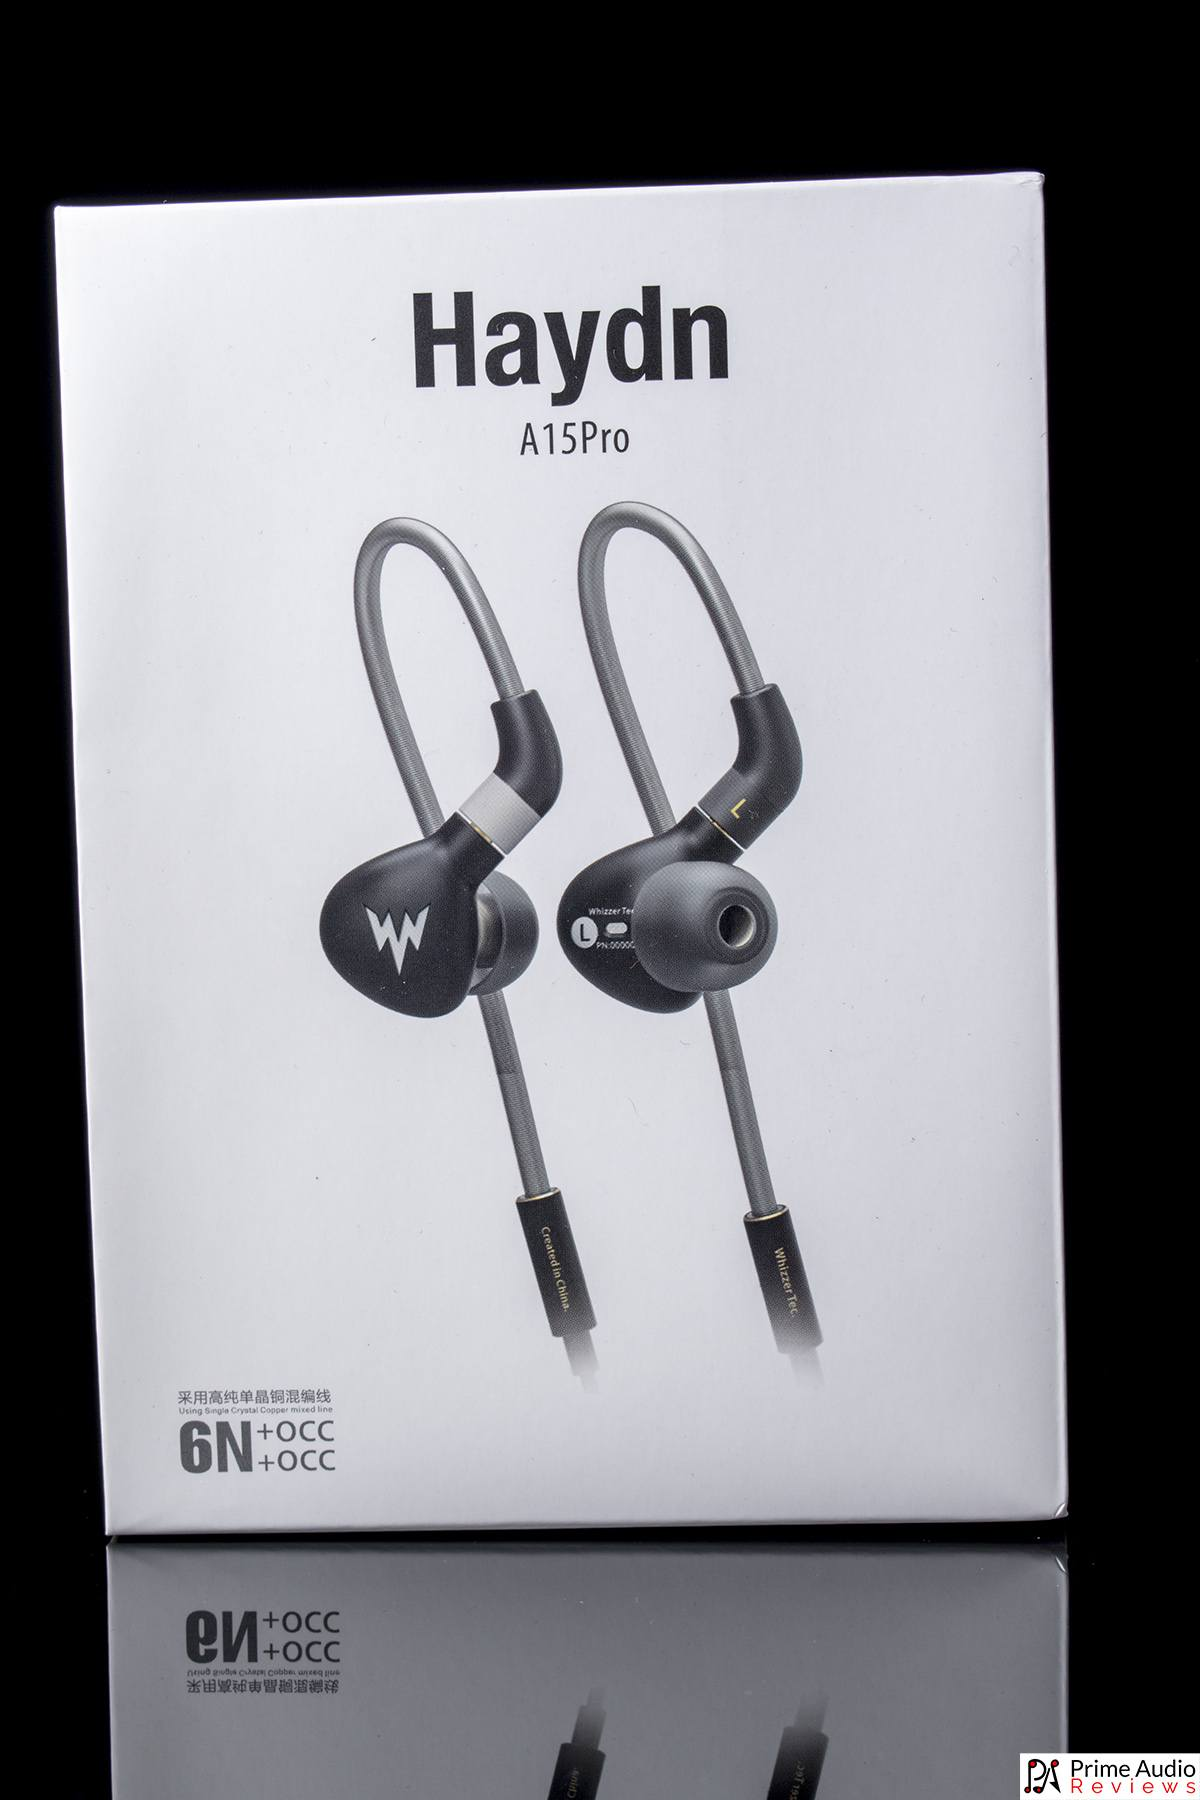 Whizzer Haydn A15 Pro Earphone Review Resolving And Detailed Sound Wiring Diagram